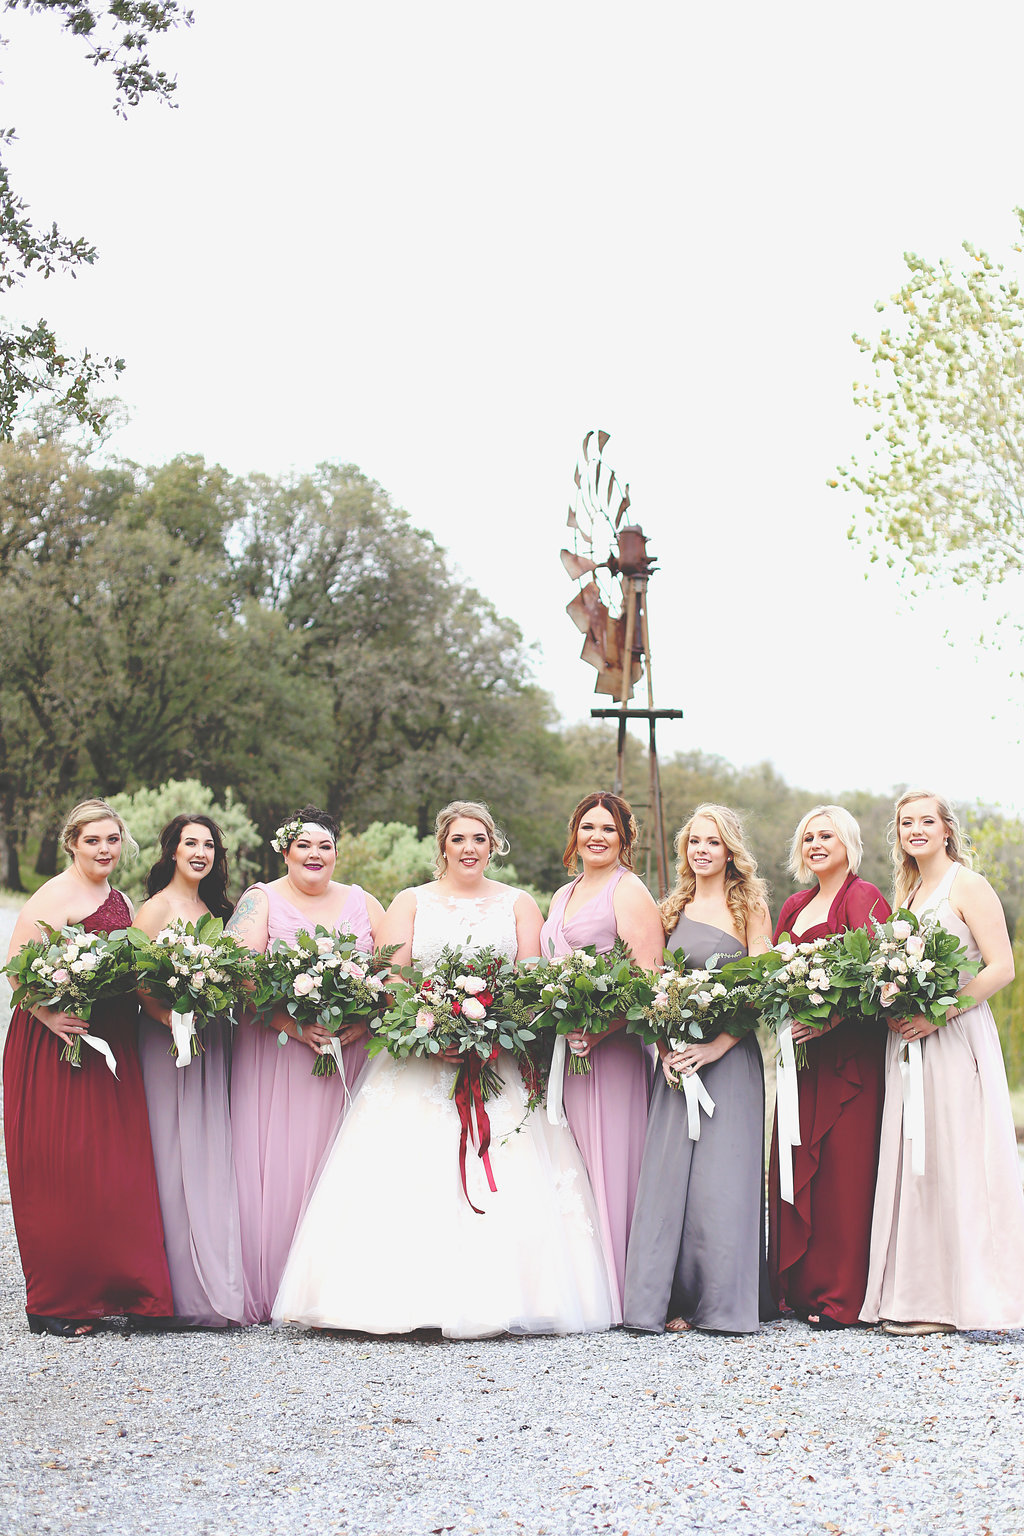 Loose Whimsical Bouquet | Velours Designs | Redding, CA | Katelyn Parra Photography